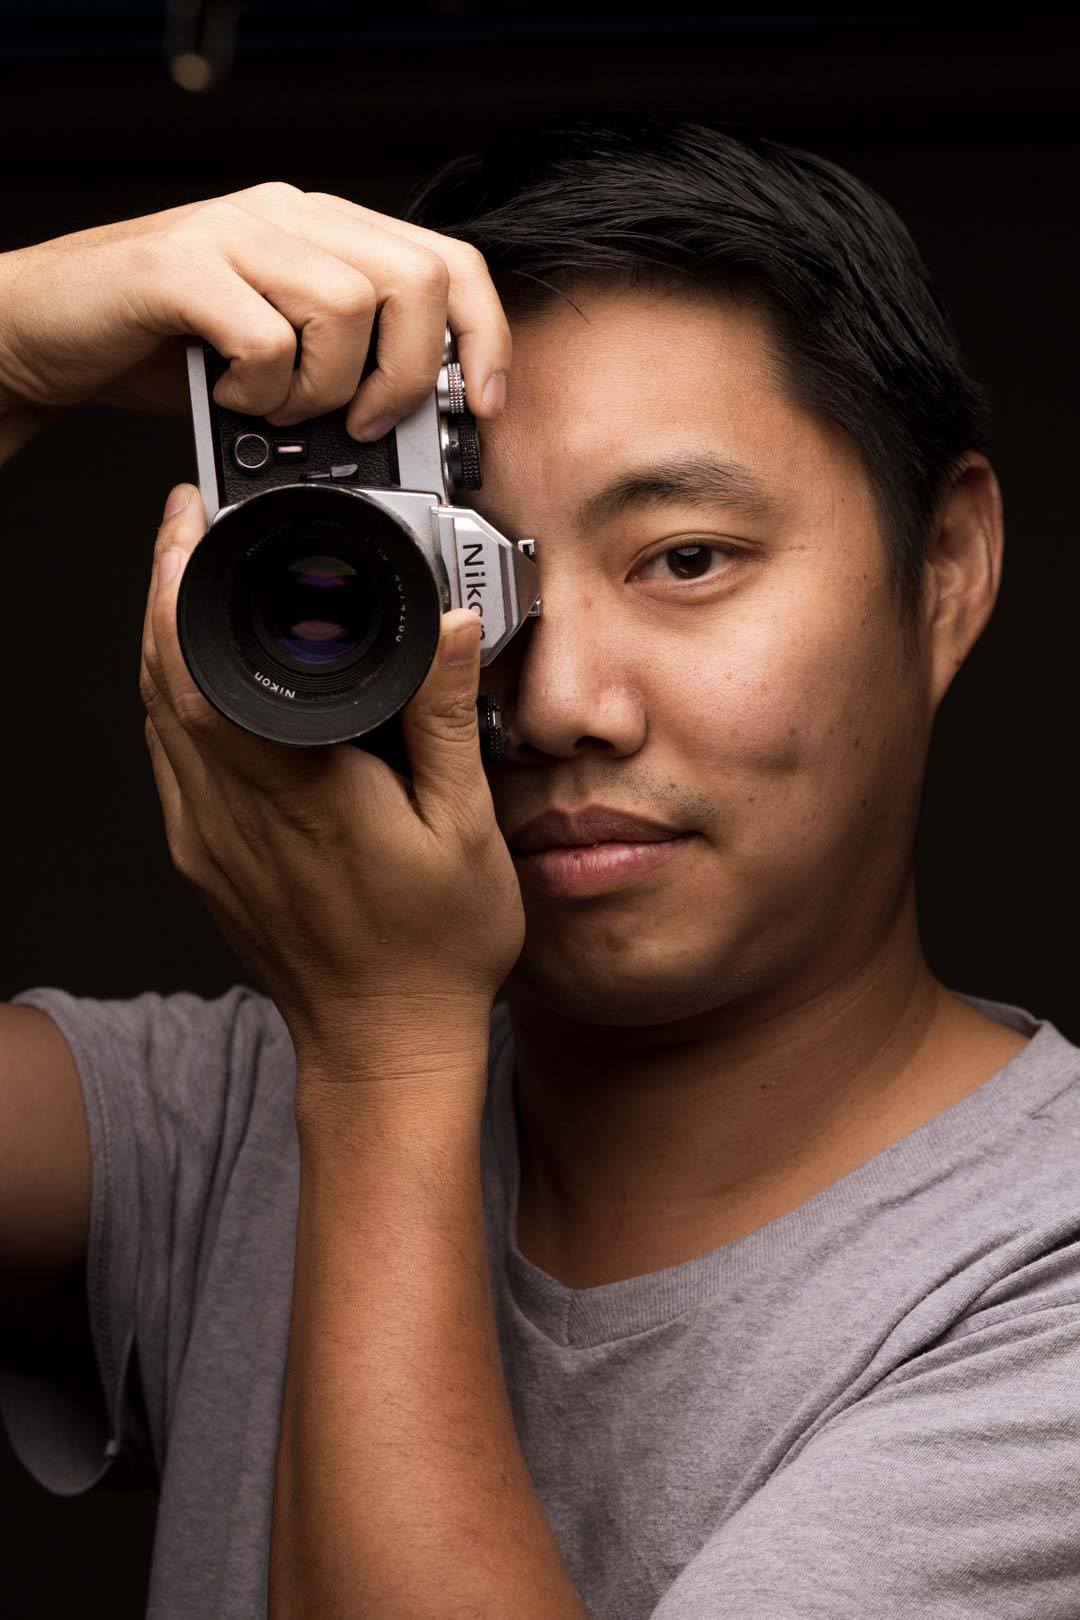 Close portrait of man holding camera